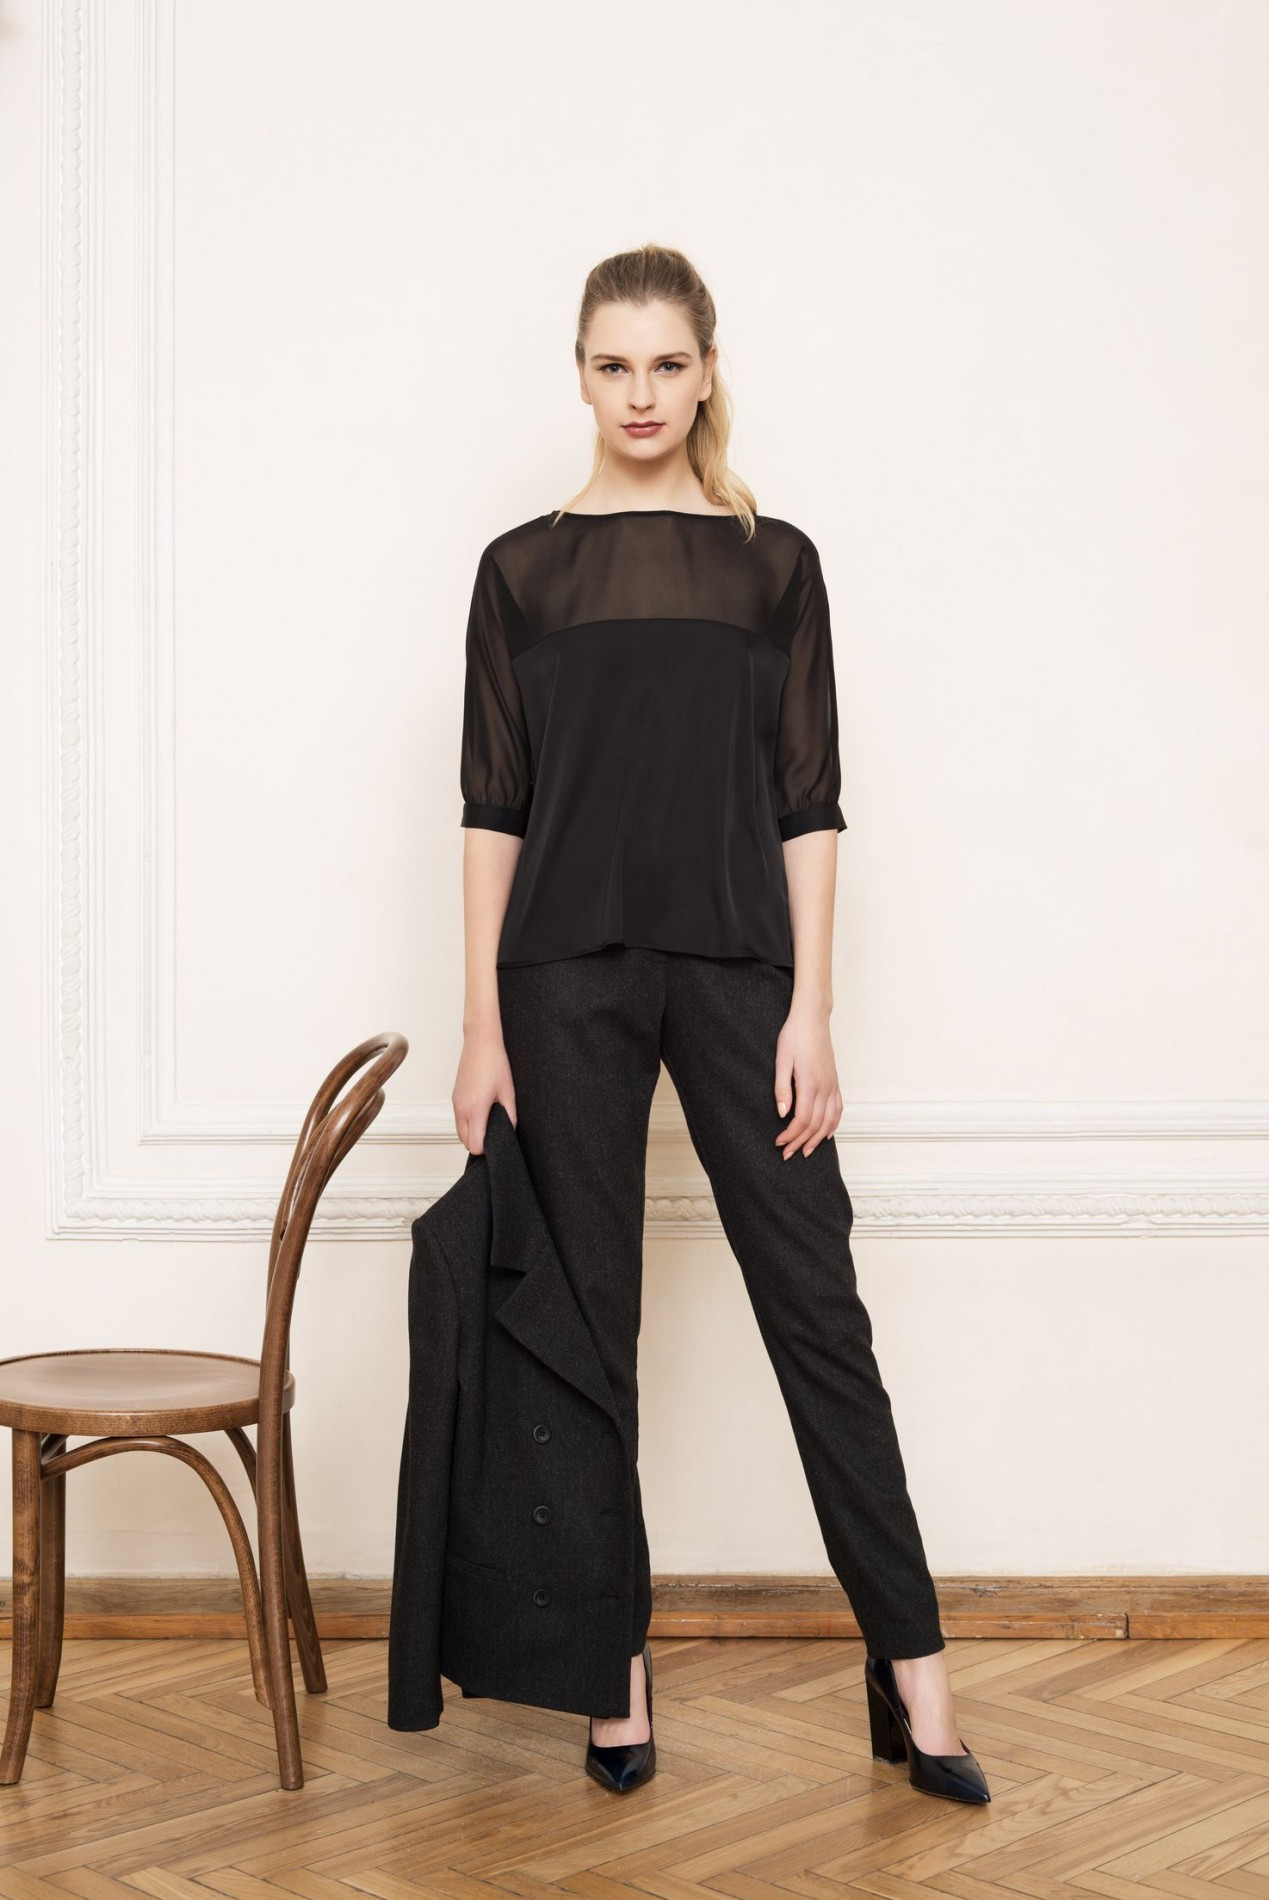 APENNINES Elegant Blouse and ALPS Slim Trousers